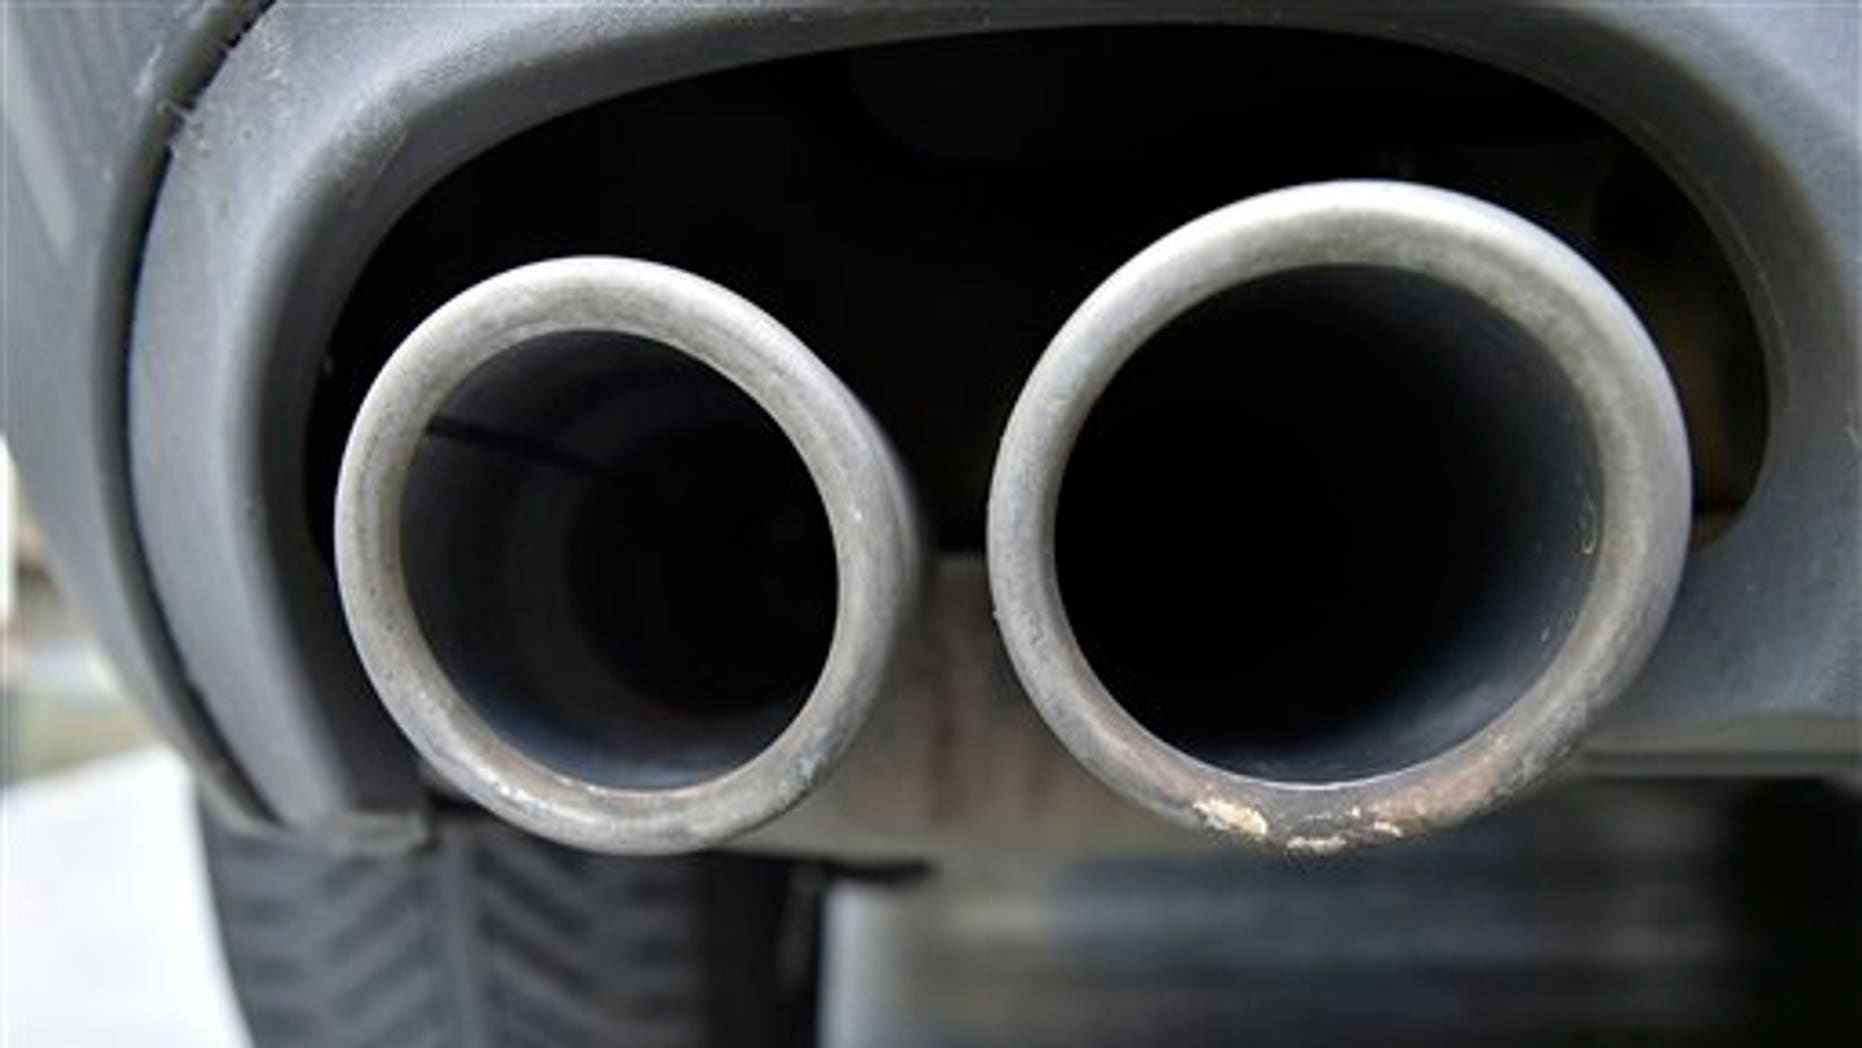 """The exhaust pipes of an up to date Audi car blow out not visible emissions during the engine start in Gelsenkirchen, Germany, Wednesday, Nov. 4, 2015. Volkswagen said Tuesday that an internal investigation has revealed """"unexplained inconsistencies"""" in the carbon dioxide emissions from 800,000 of its vehicles. (AP Photo/Martin Meissner)"""